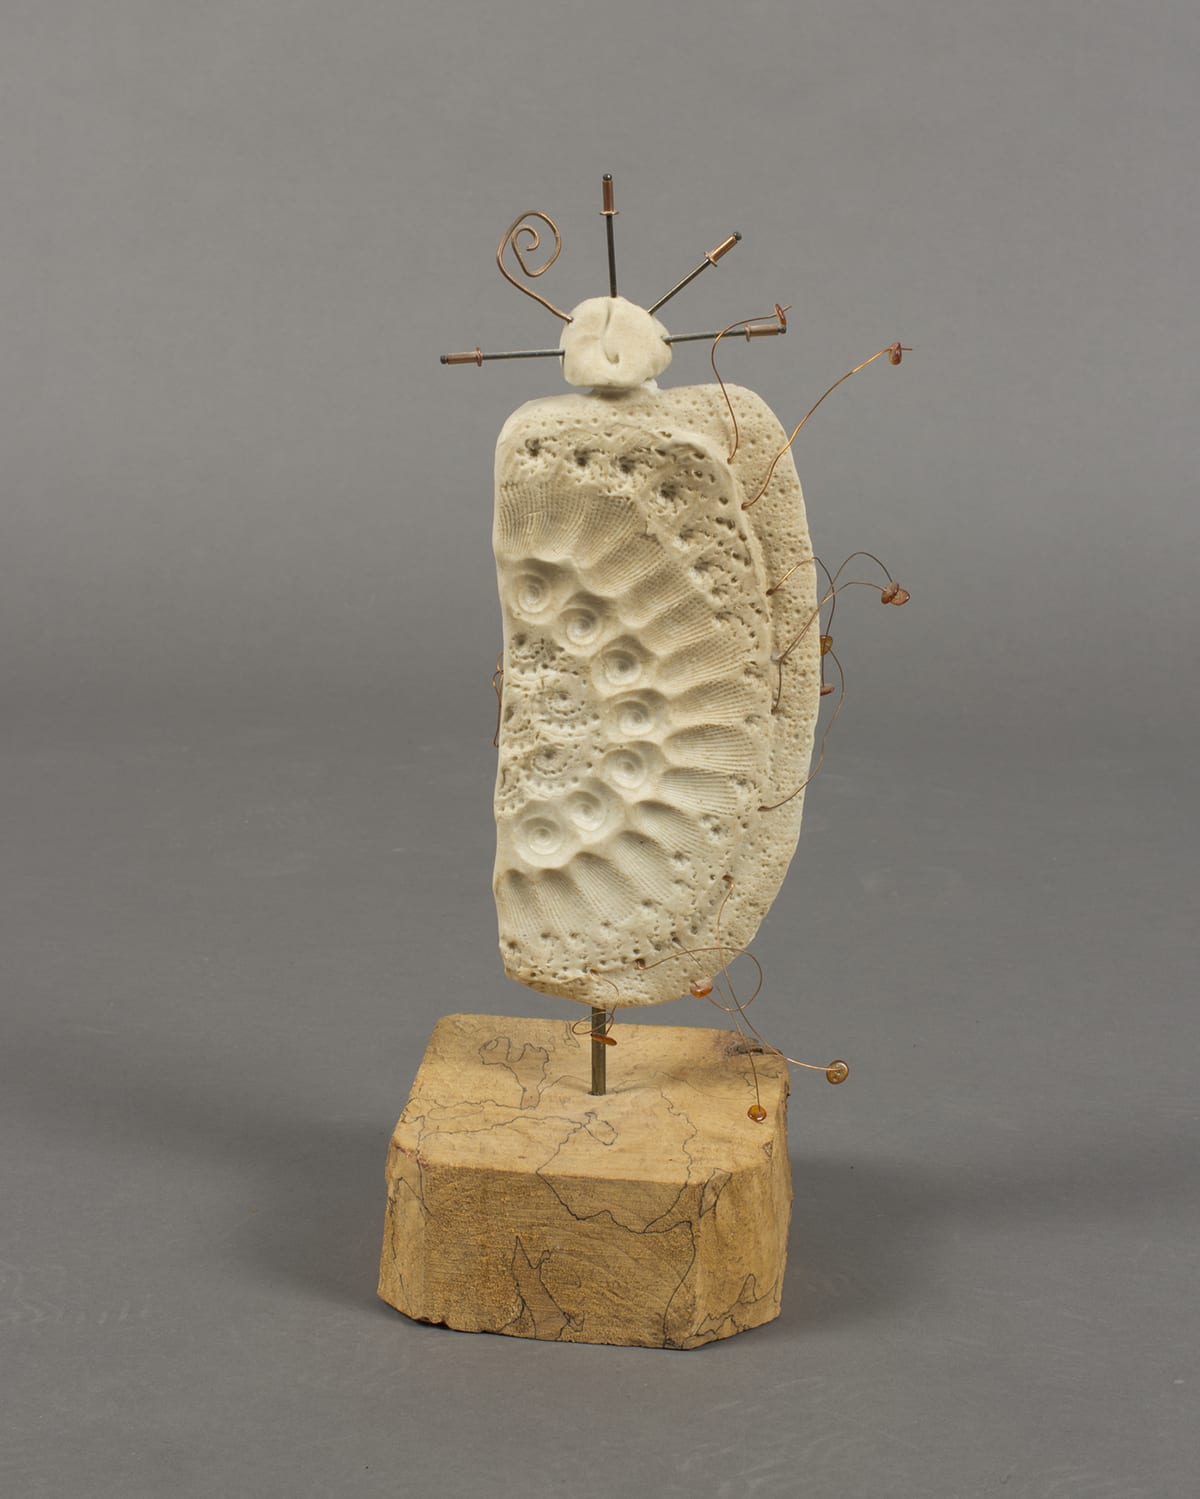 Dancing in the Wind, Lillian Pitt, 14 ¾ x 5 7/8 x 4 7/8 inches, clay, beads, wood, and wire. A photo of a sculpture composed of three main parts: a body, a base, and a finial. The pale-beige clay body is shaped like a vertical rectangle with rounded corners and is highly textured with imprinted patterns. The bottom right corner is rounded off further than the other corners. The imprinted patterns appear to have been made with shells and form concentric semicircles similar to how the bands of a rainbow are arranged. A row each of scallop and nautilus shell imprints form arcs on their sides starting at the top and ending at the bottom. The balance of the body is dotted with the indentations of shell markings overall. Protruding irregularly from the right side of the body are bent copper wires with amber colored beads at the ends. Each wire is bent differently. The body is attached to a thick, chunky wood base by a short, metal rod. The blond wood of the base is traversed with thin dark lines that seem to outline the grain. At top, the finial is connected to the body by clay and is an irregular spherical shape with metal rods radiating out at 9, 12, 2, and 3 o'clock. At 10 o'clock, a copper wire curves into a spiral.